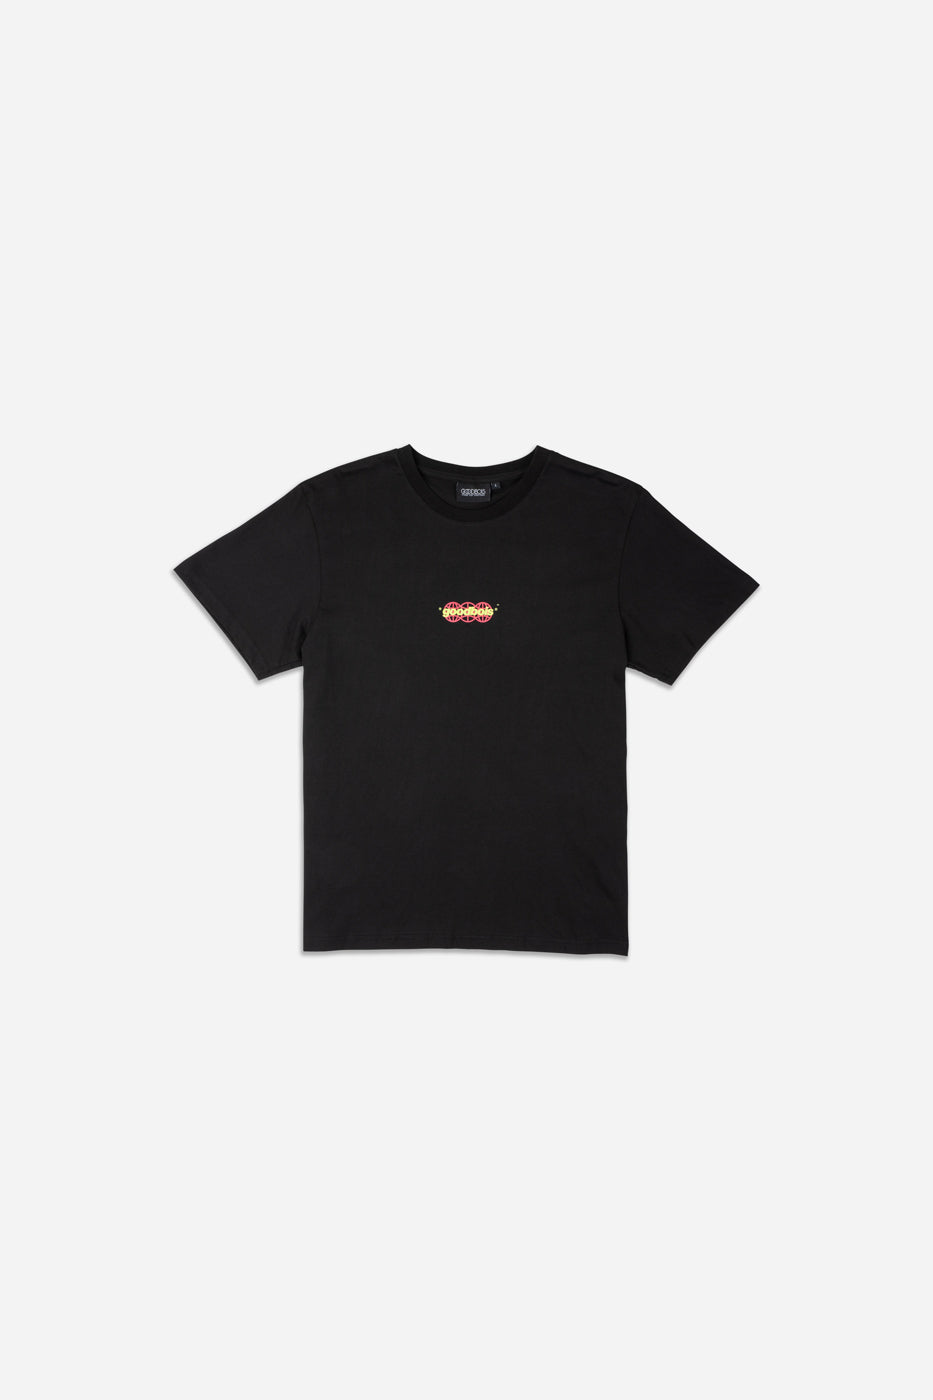 GEAR T-SHIRT BLK